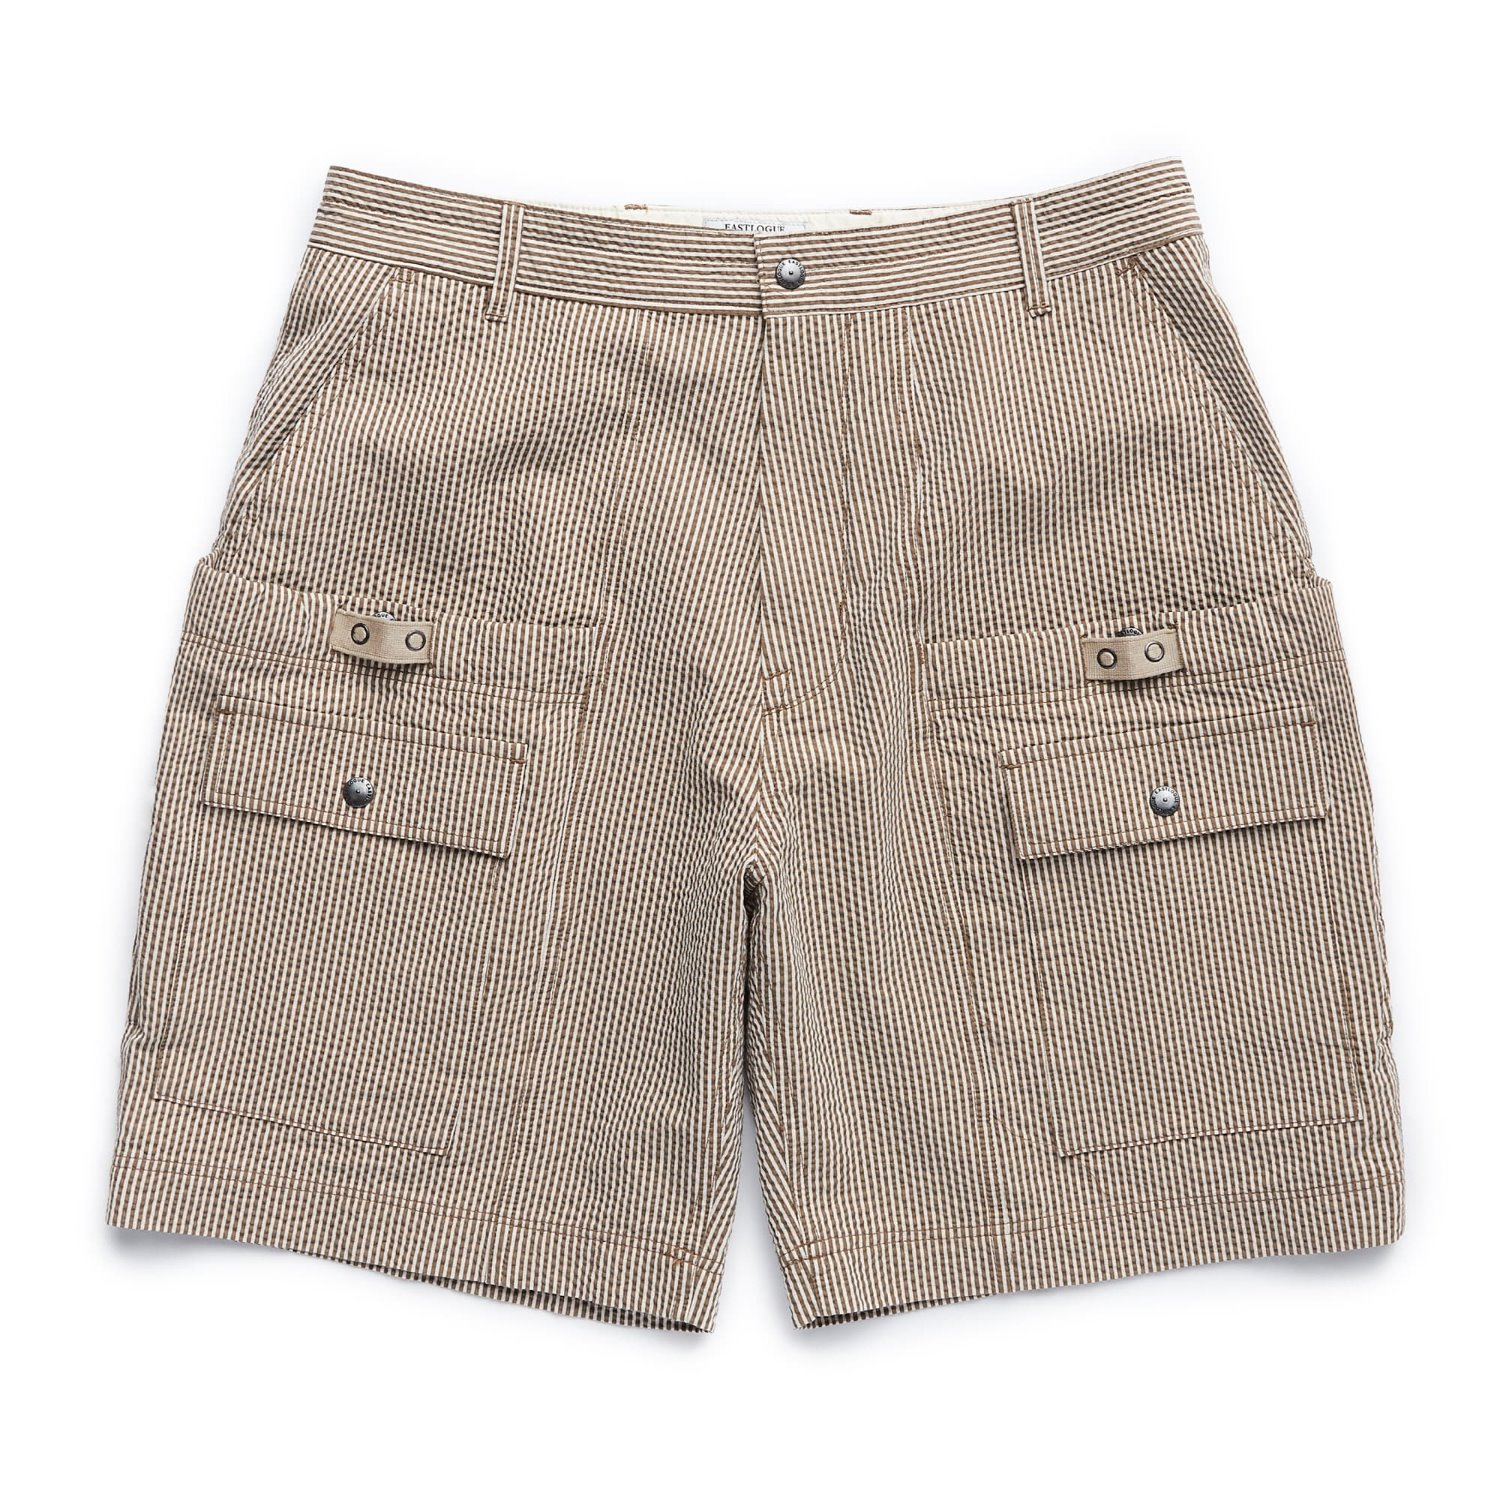 EASTLOGUE Wagon Shorts (Beige Seersucker)